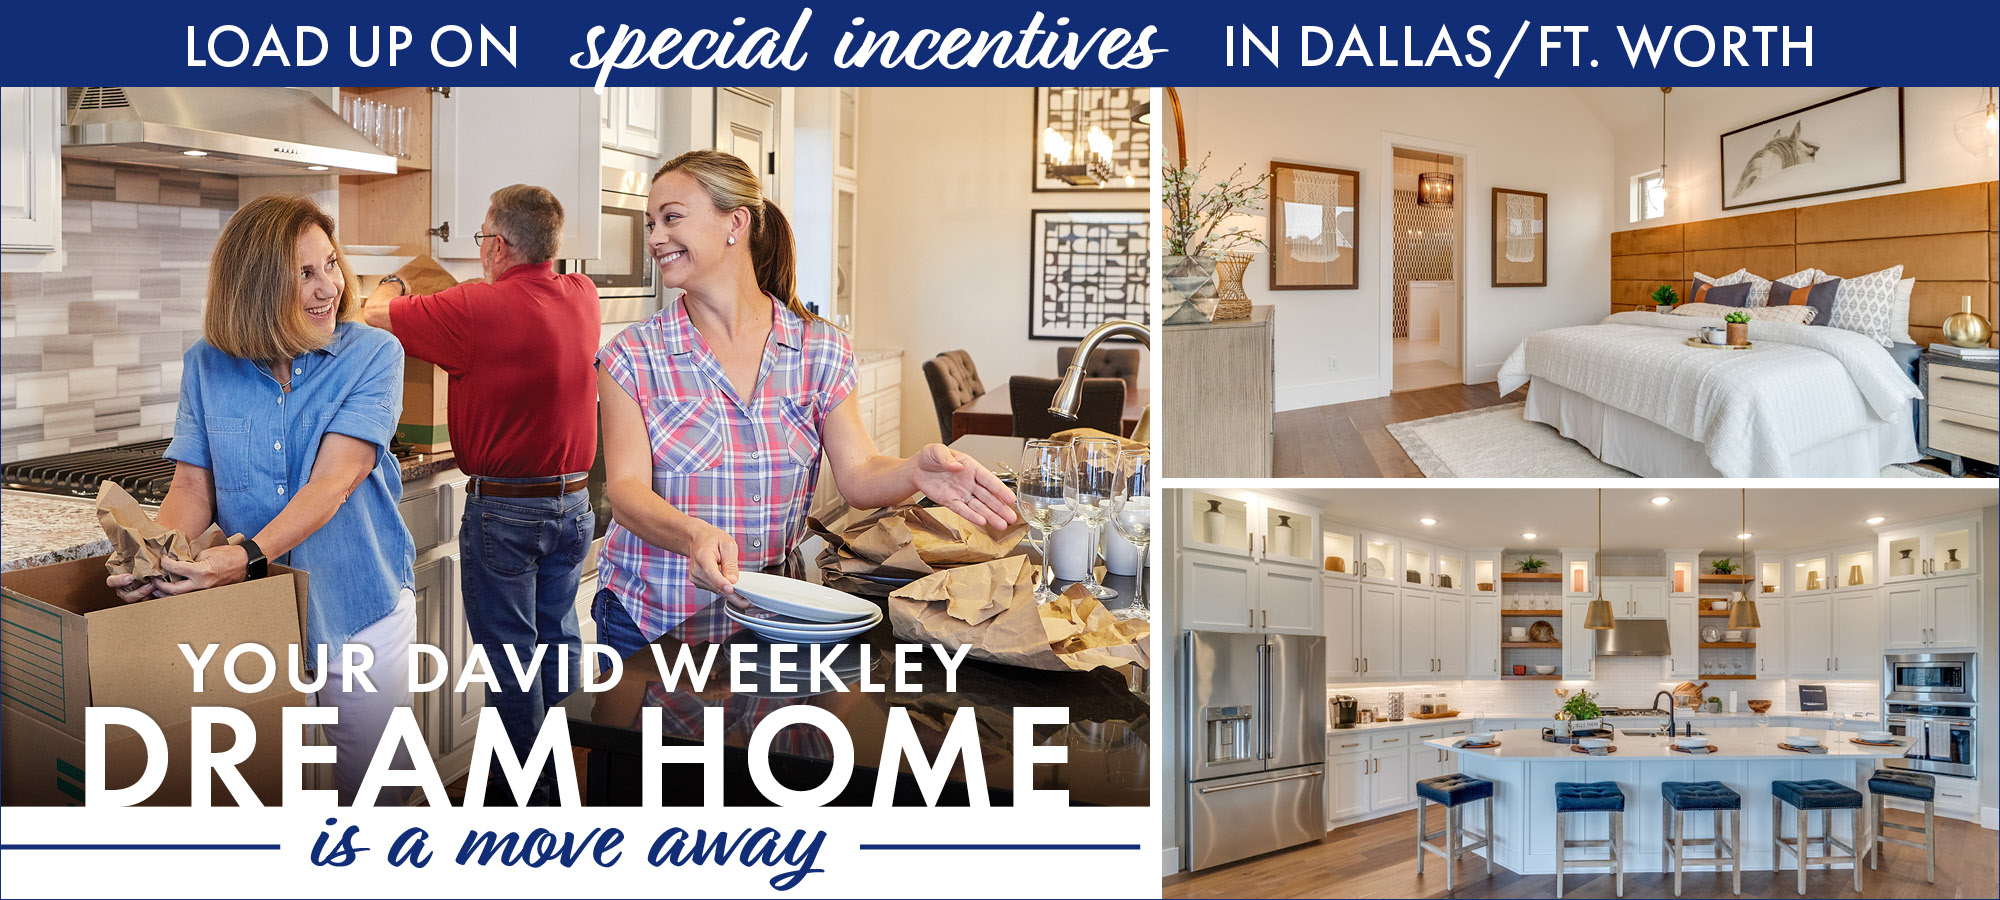 Start packing for your new, move-in ready home in Dallas/Ft. Worth and enjoy limited-time incentives.